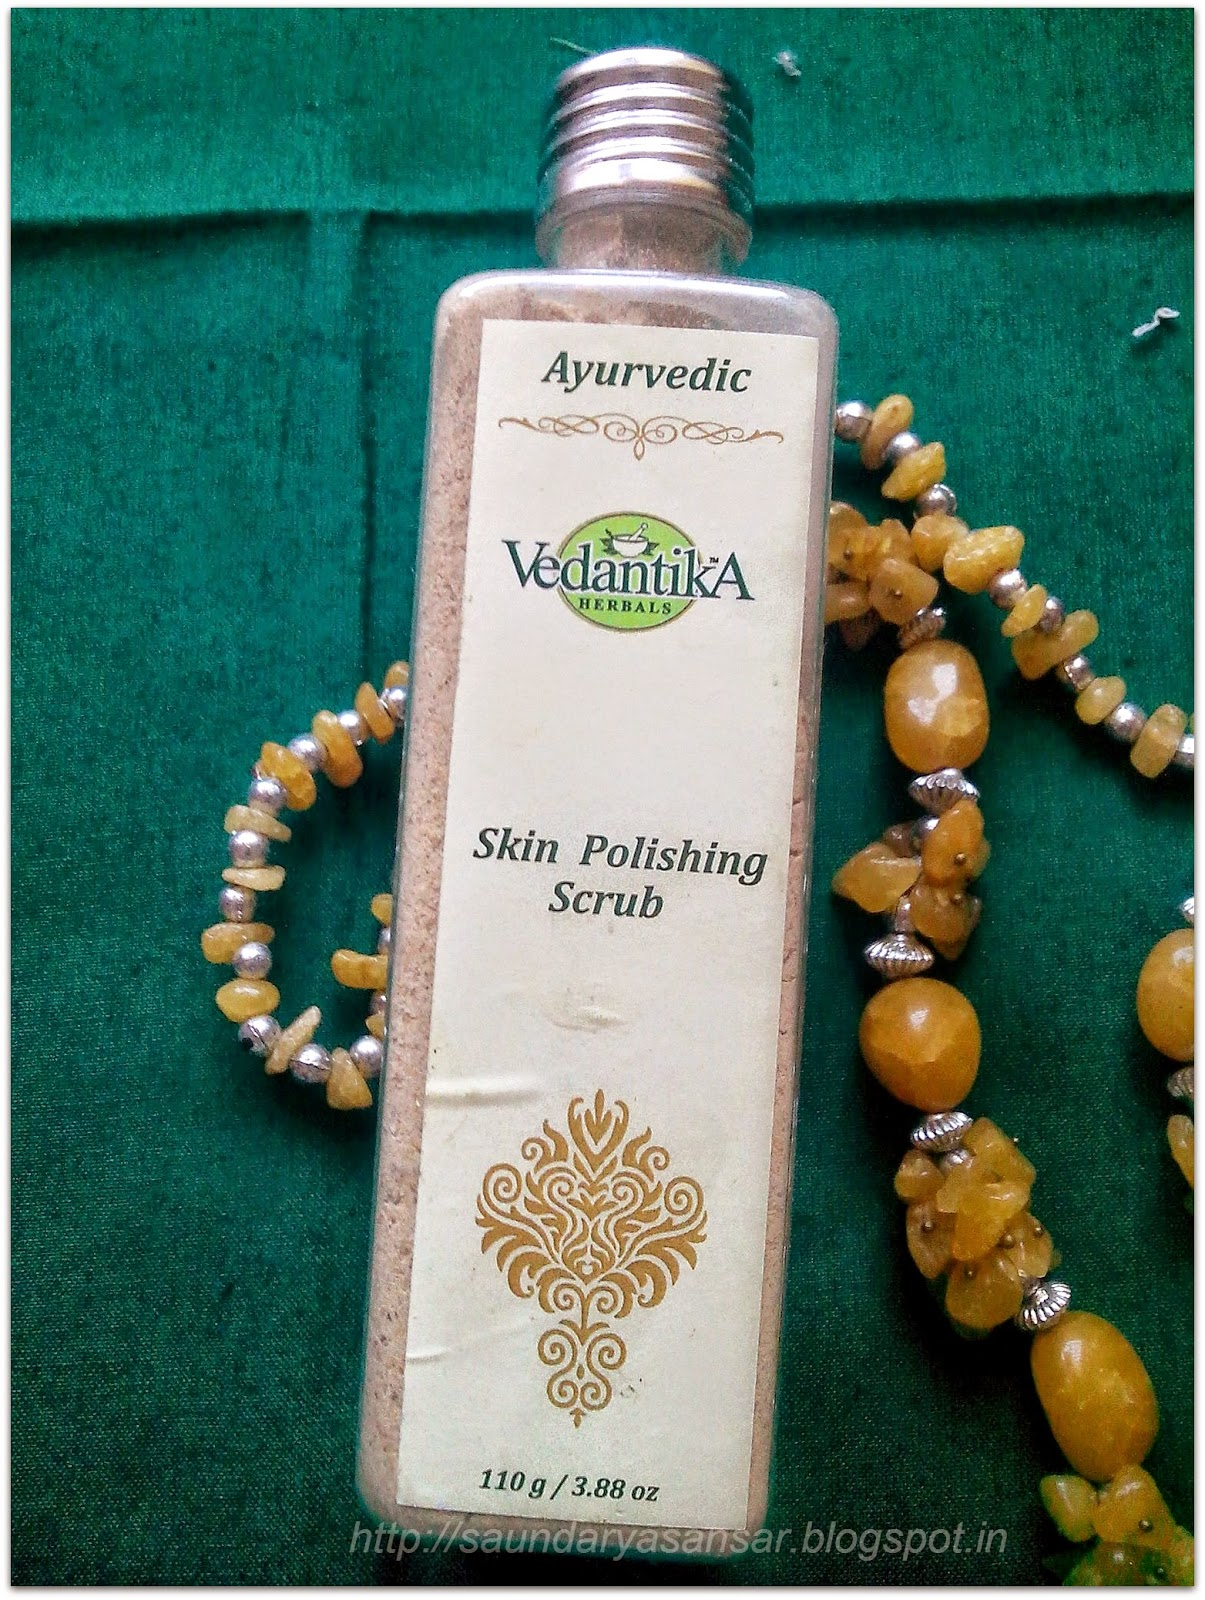 Vedantika herbals skin polishing scrub (Review)